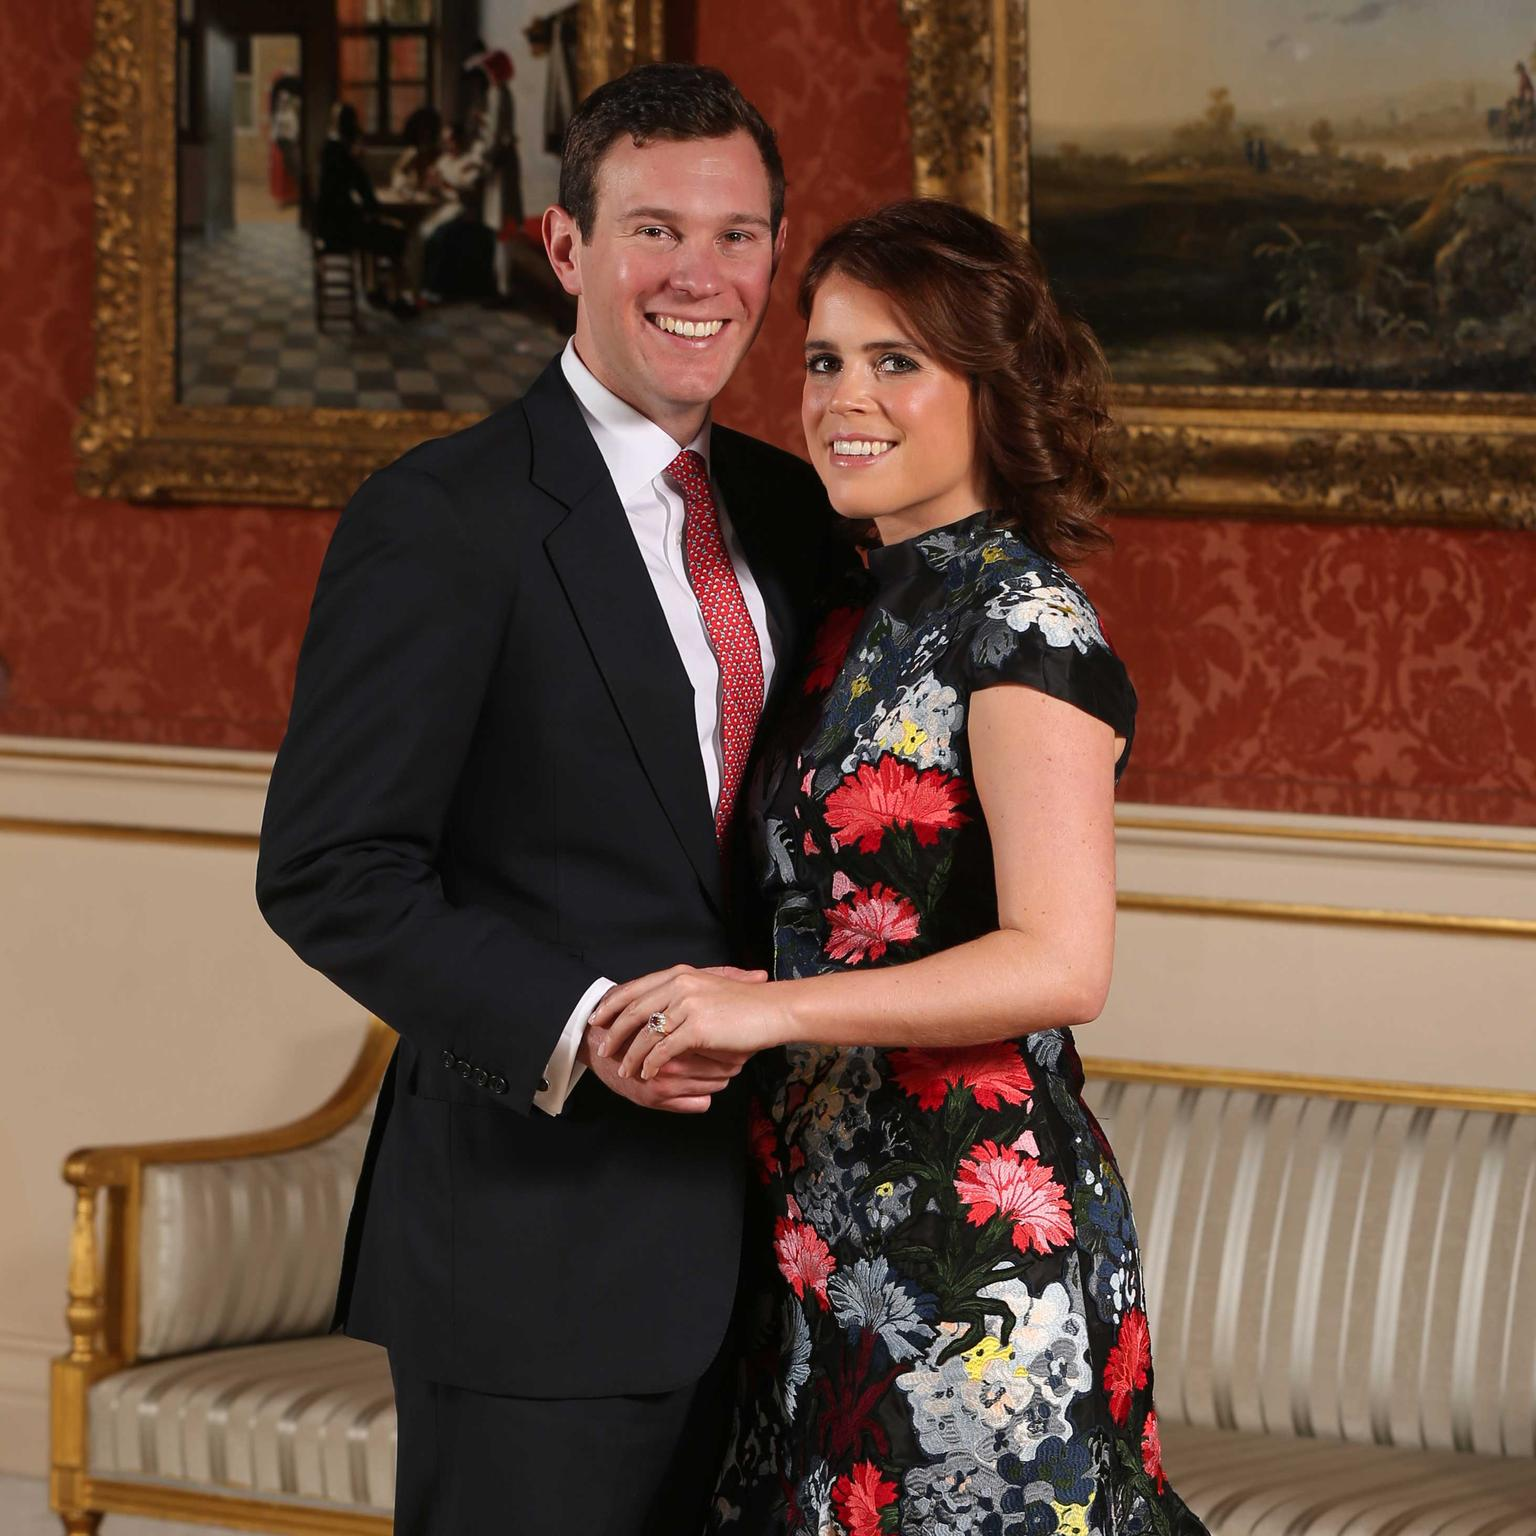 Princess Eugenie and Jack Brooksbank official engagement photograph